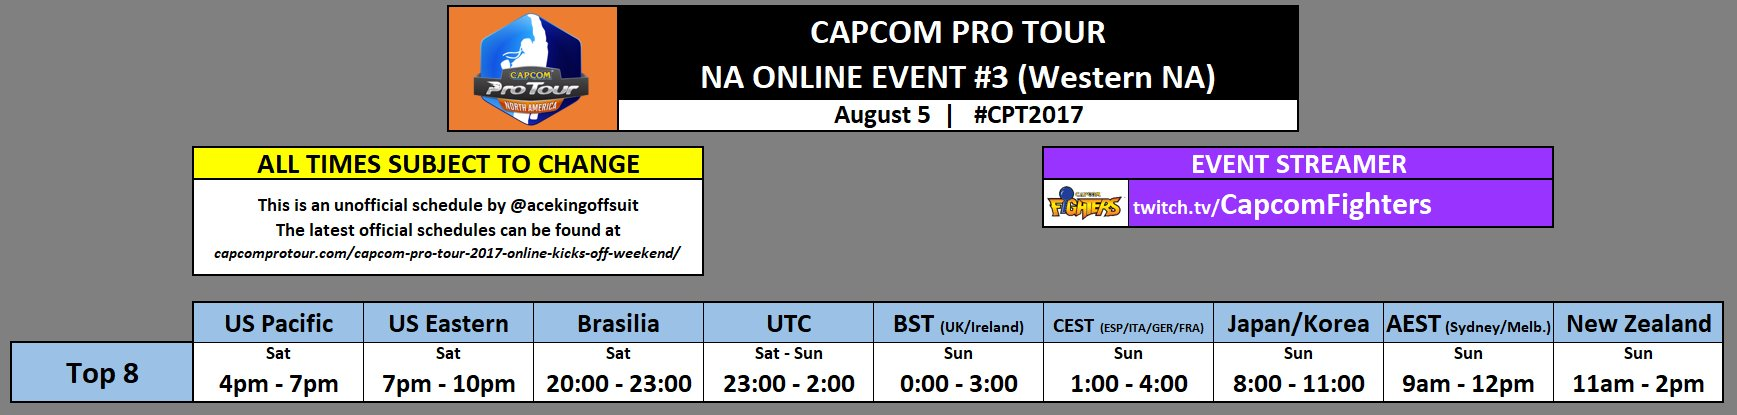 Capcom Pro Tour Online Event Schedule 1 out of 1 image gallery